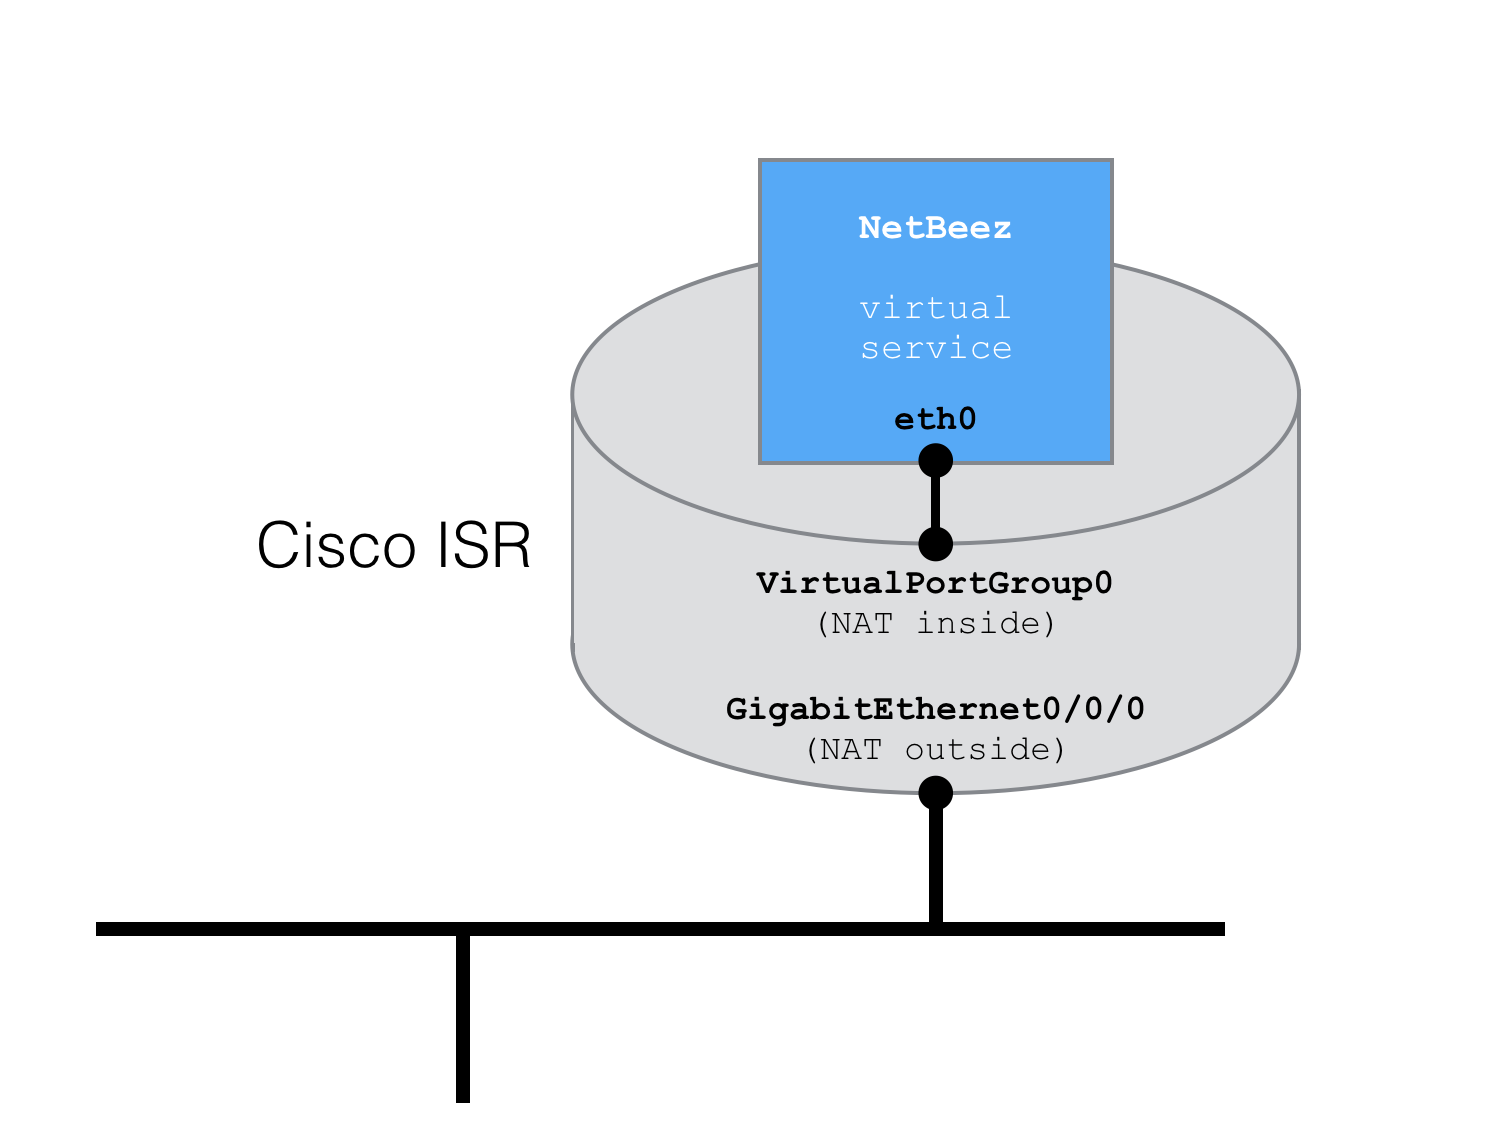 Cisco ISR - Running the NetBeez agent as a virtual service – NetBeez